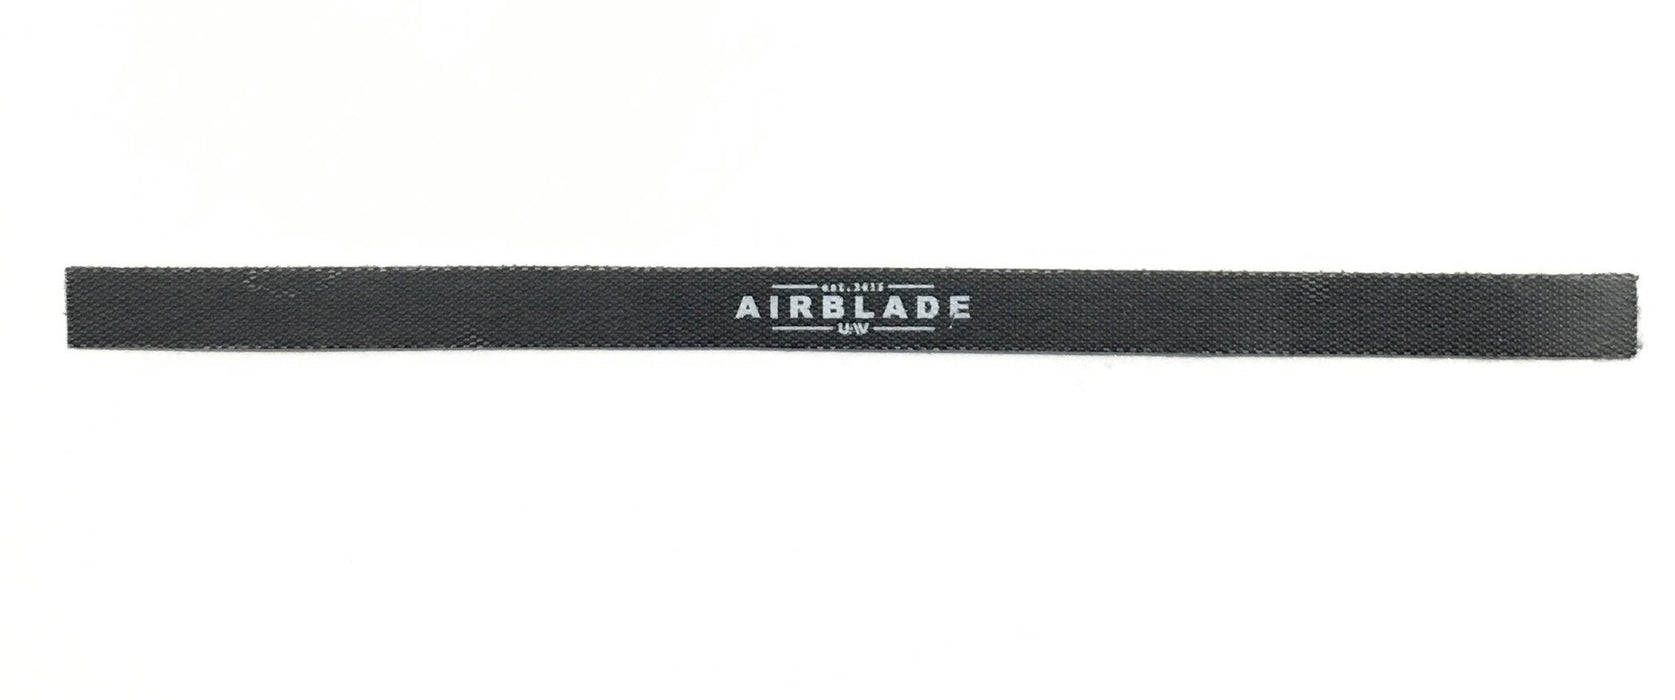 AirBlade Battery Strap for Nano Quads AirBlade UAV